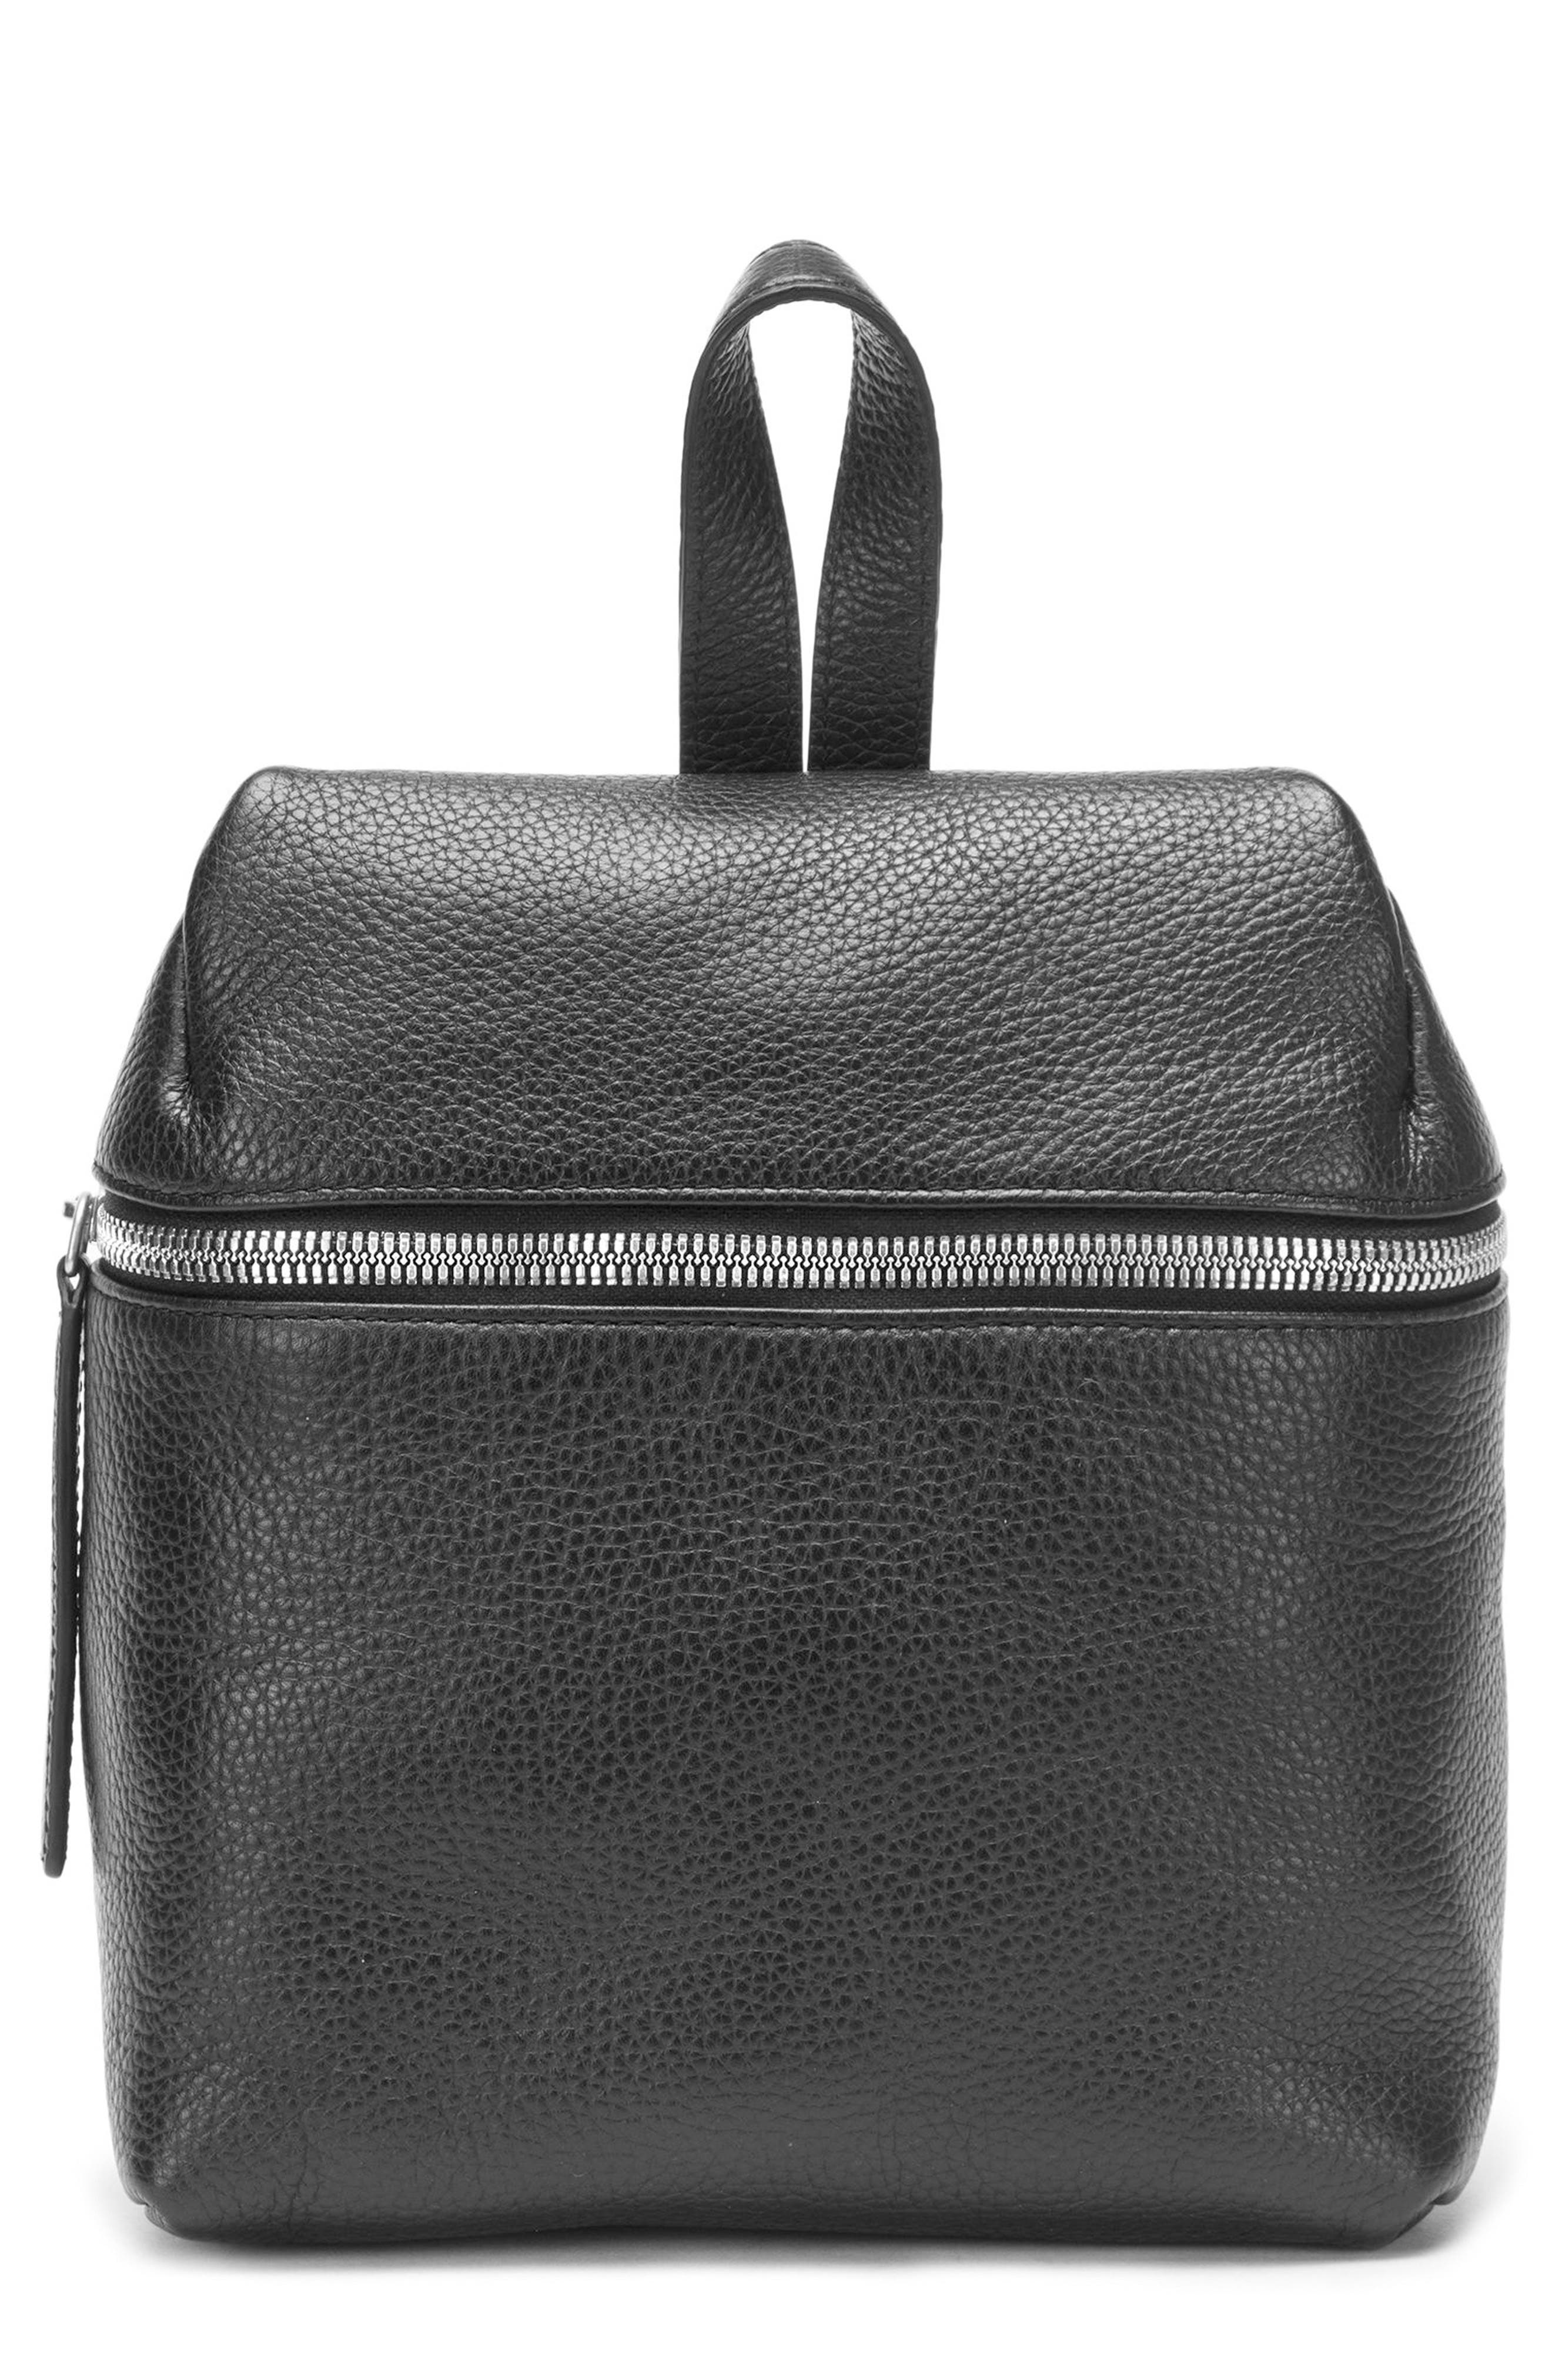 KARA Small Pebbled Leather Backpack | Nordstrom